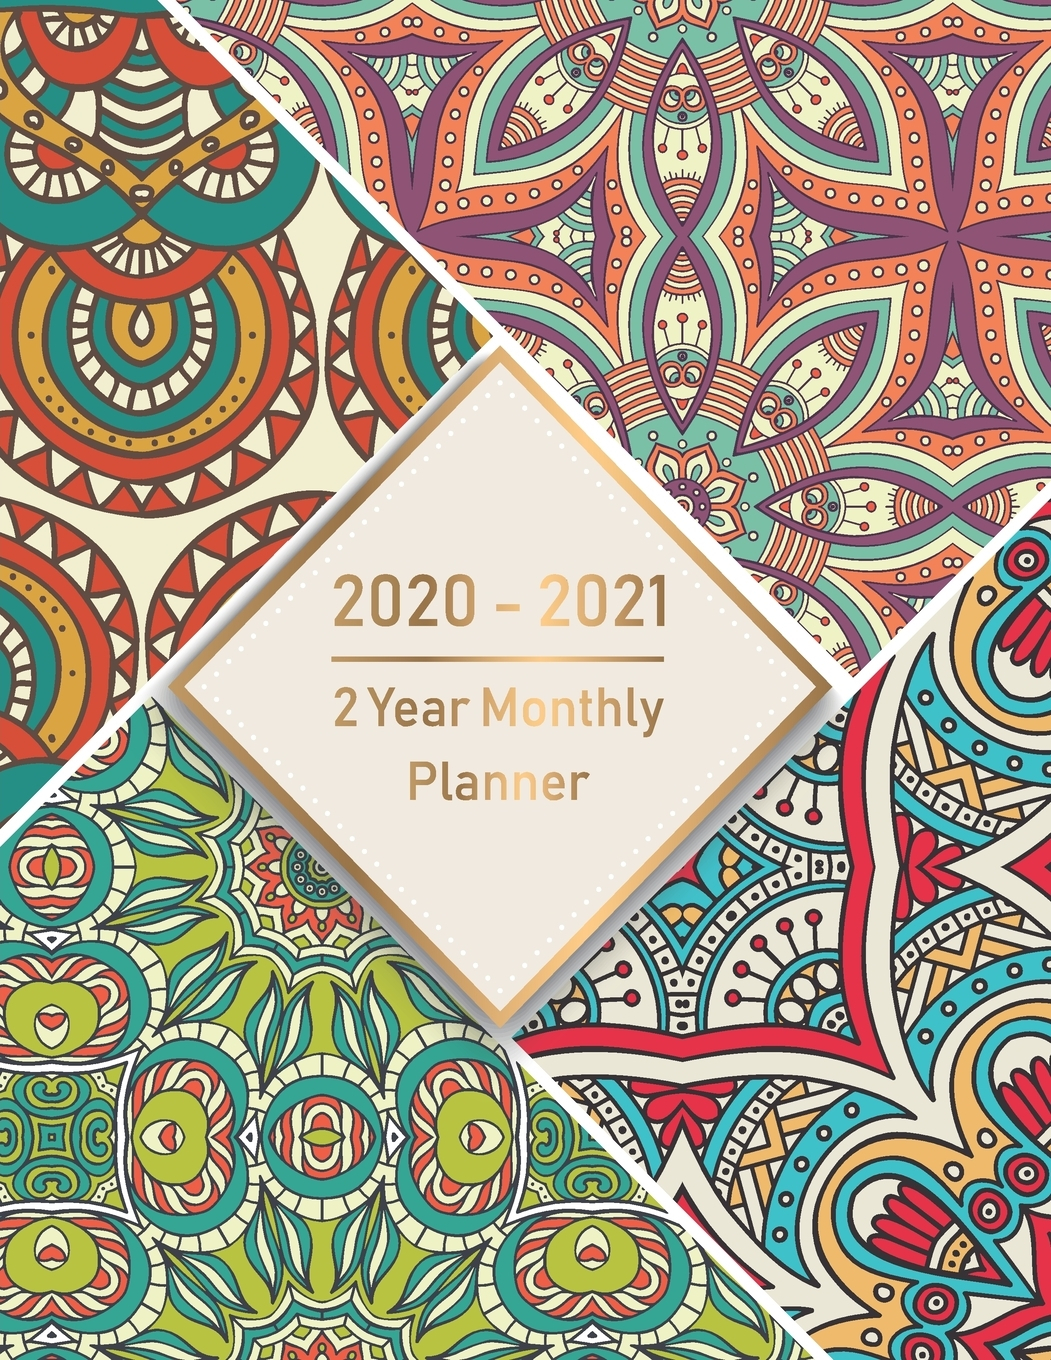 2020-2021 Monthly Planner: 2 Year Monthly Planner 2020-2021: Monthly  Schedule Organizer, Agenda Planner For The Next Two Years, 24 Months  Calendar, throughout 2021-2021: 2-Year Planner 24-Monthly